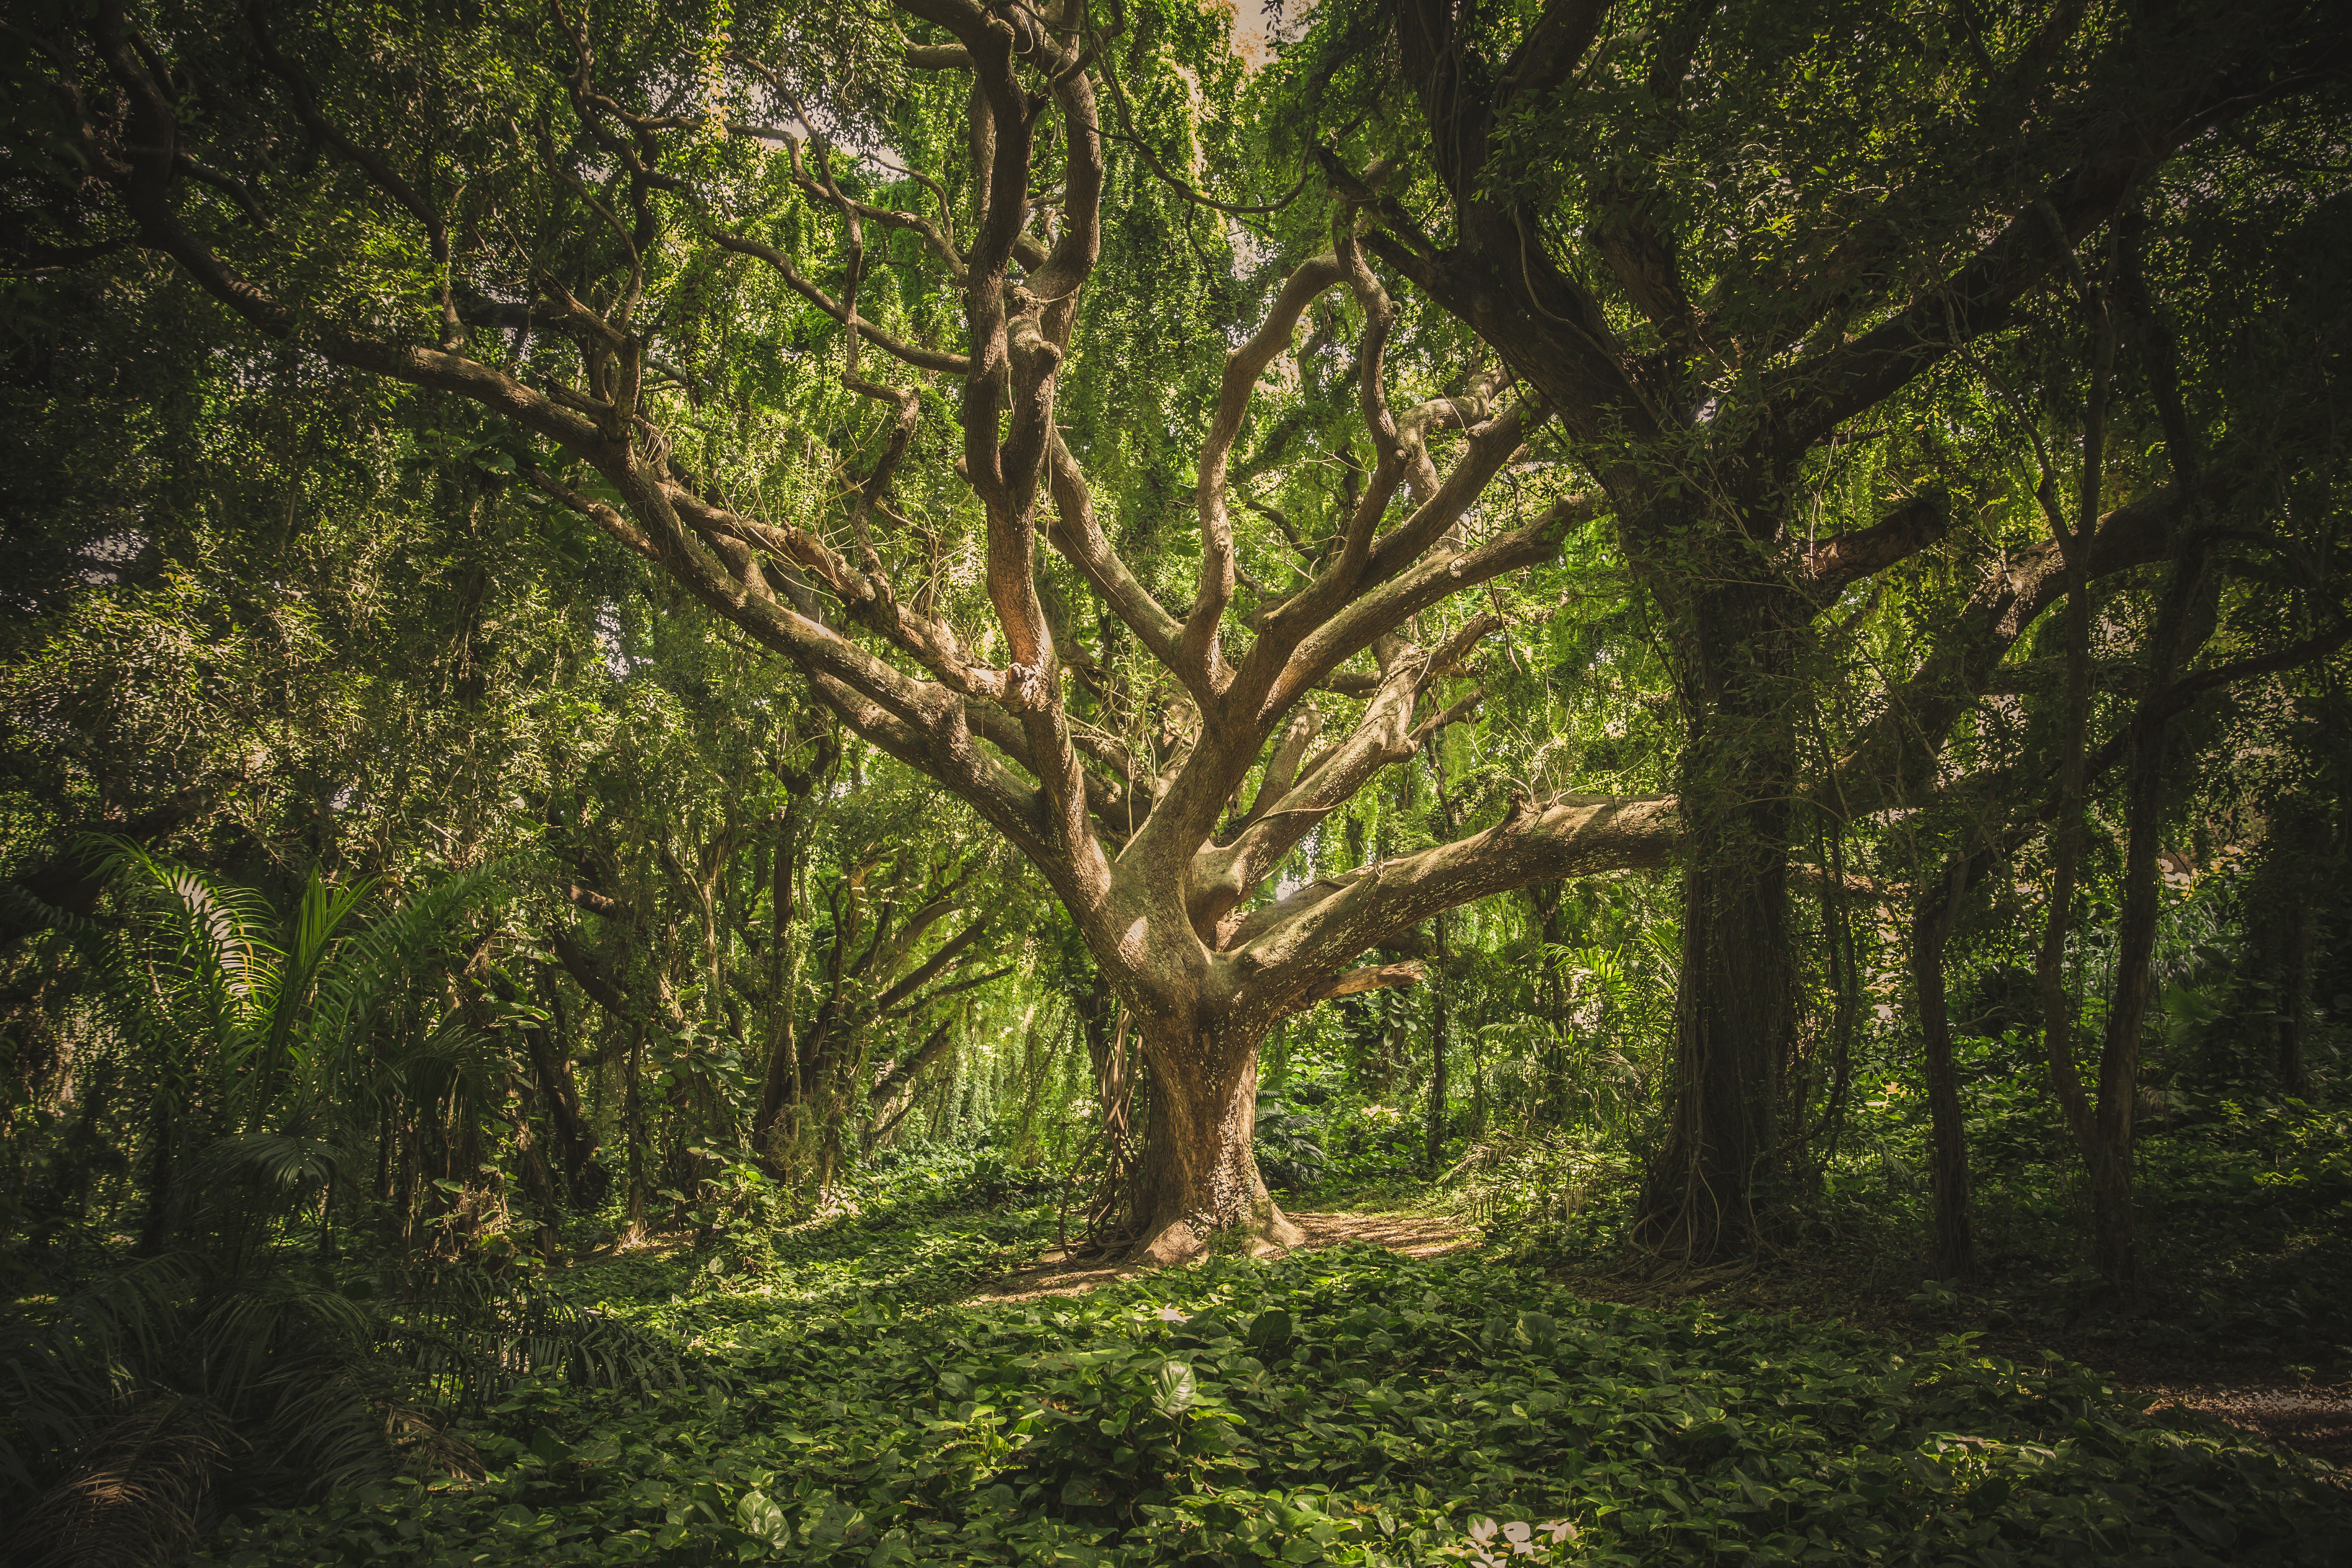 Our Collection Of Forest Pictures And Images Consists Scenic Views The Woods Trees All Stock Photos Are Royalty Free Can Be